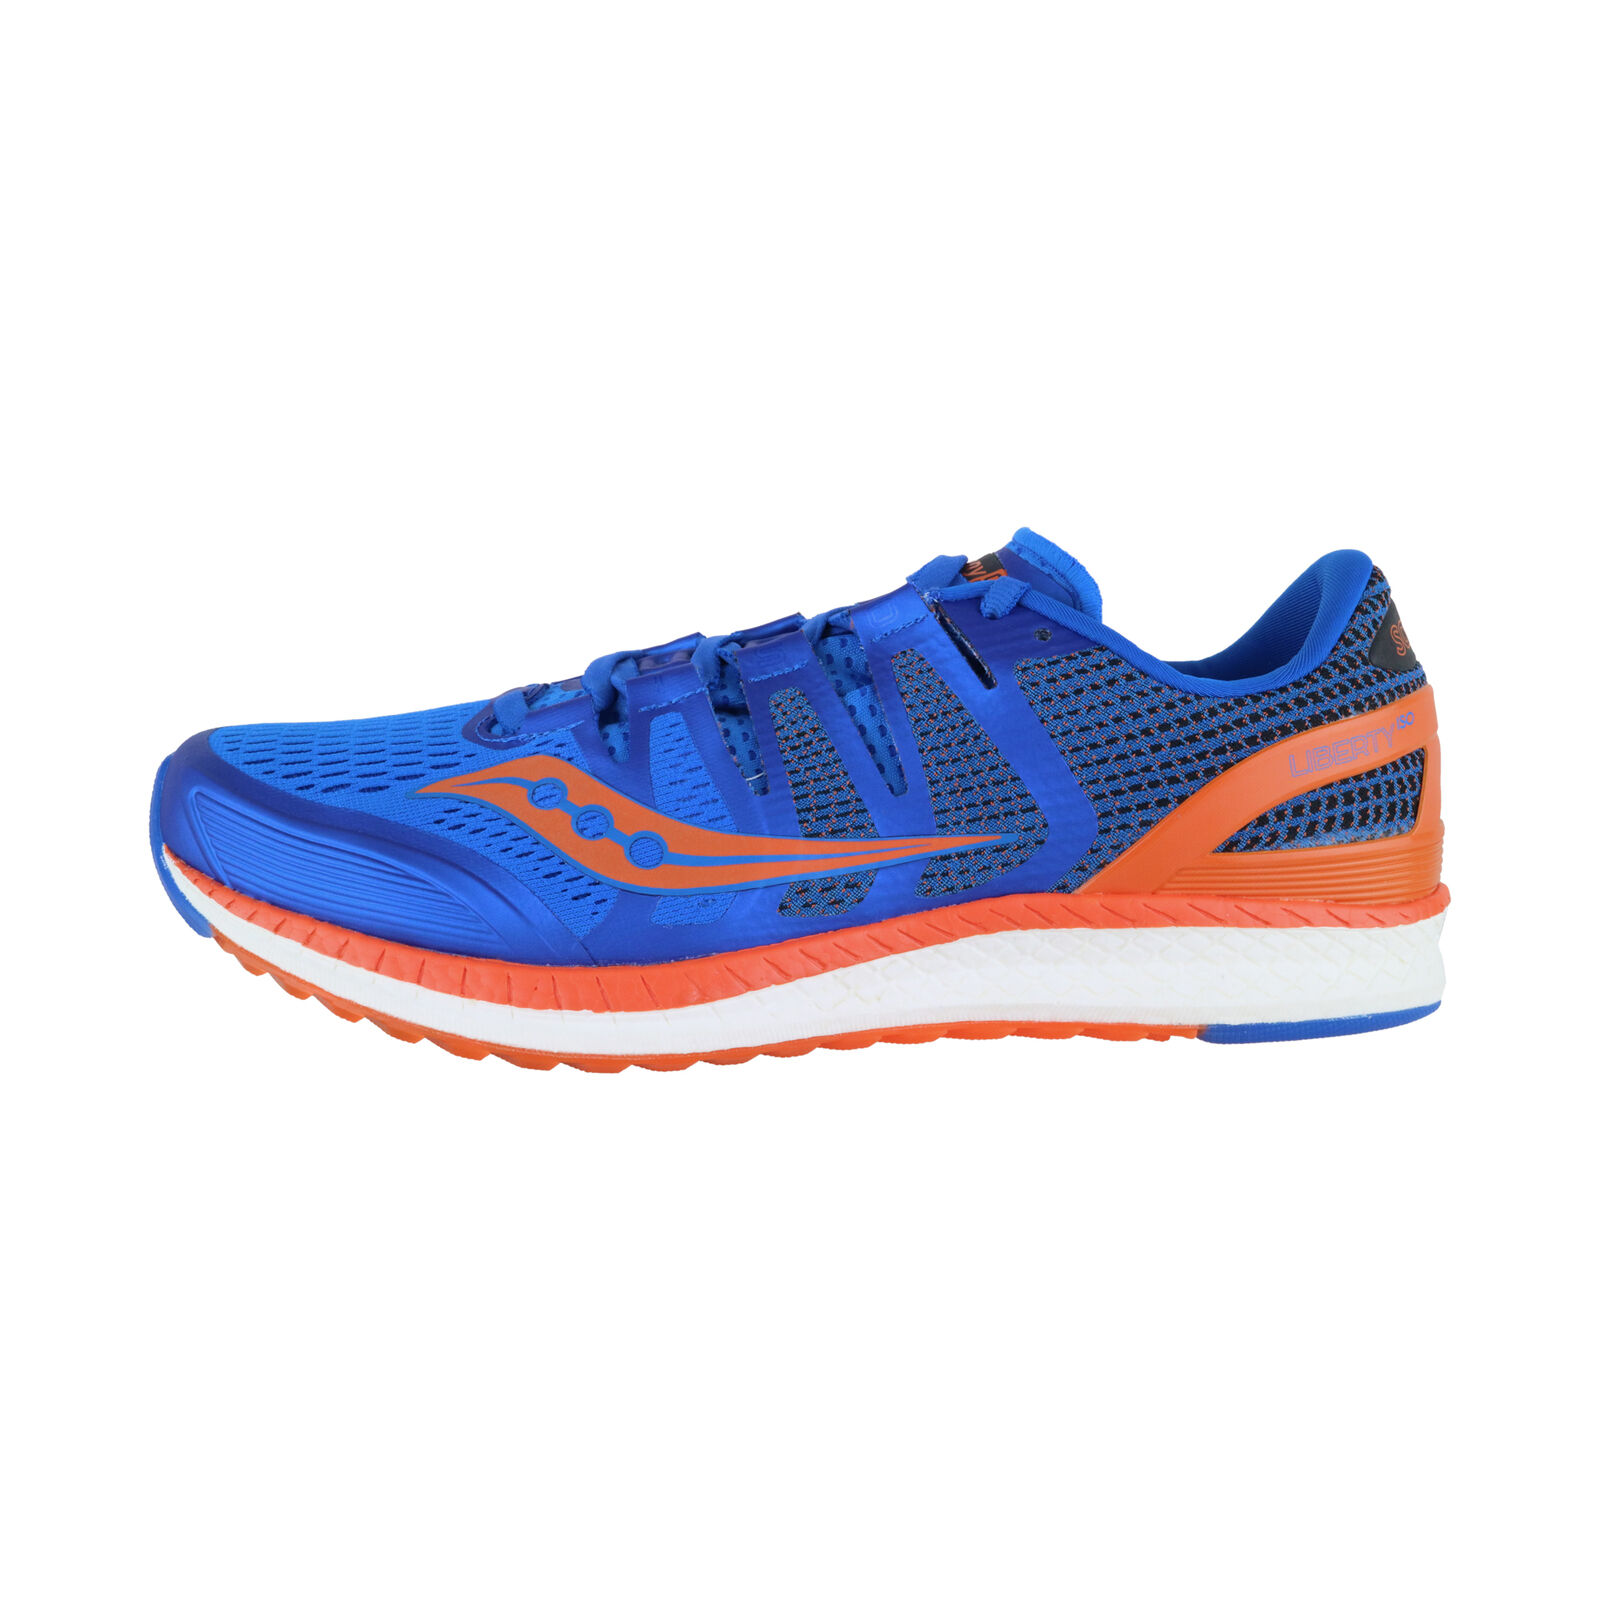 Saucony Liberty ISO Blau Orange S20410-36